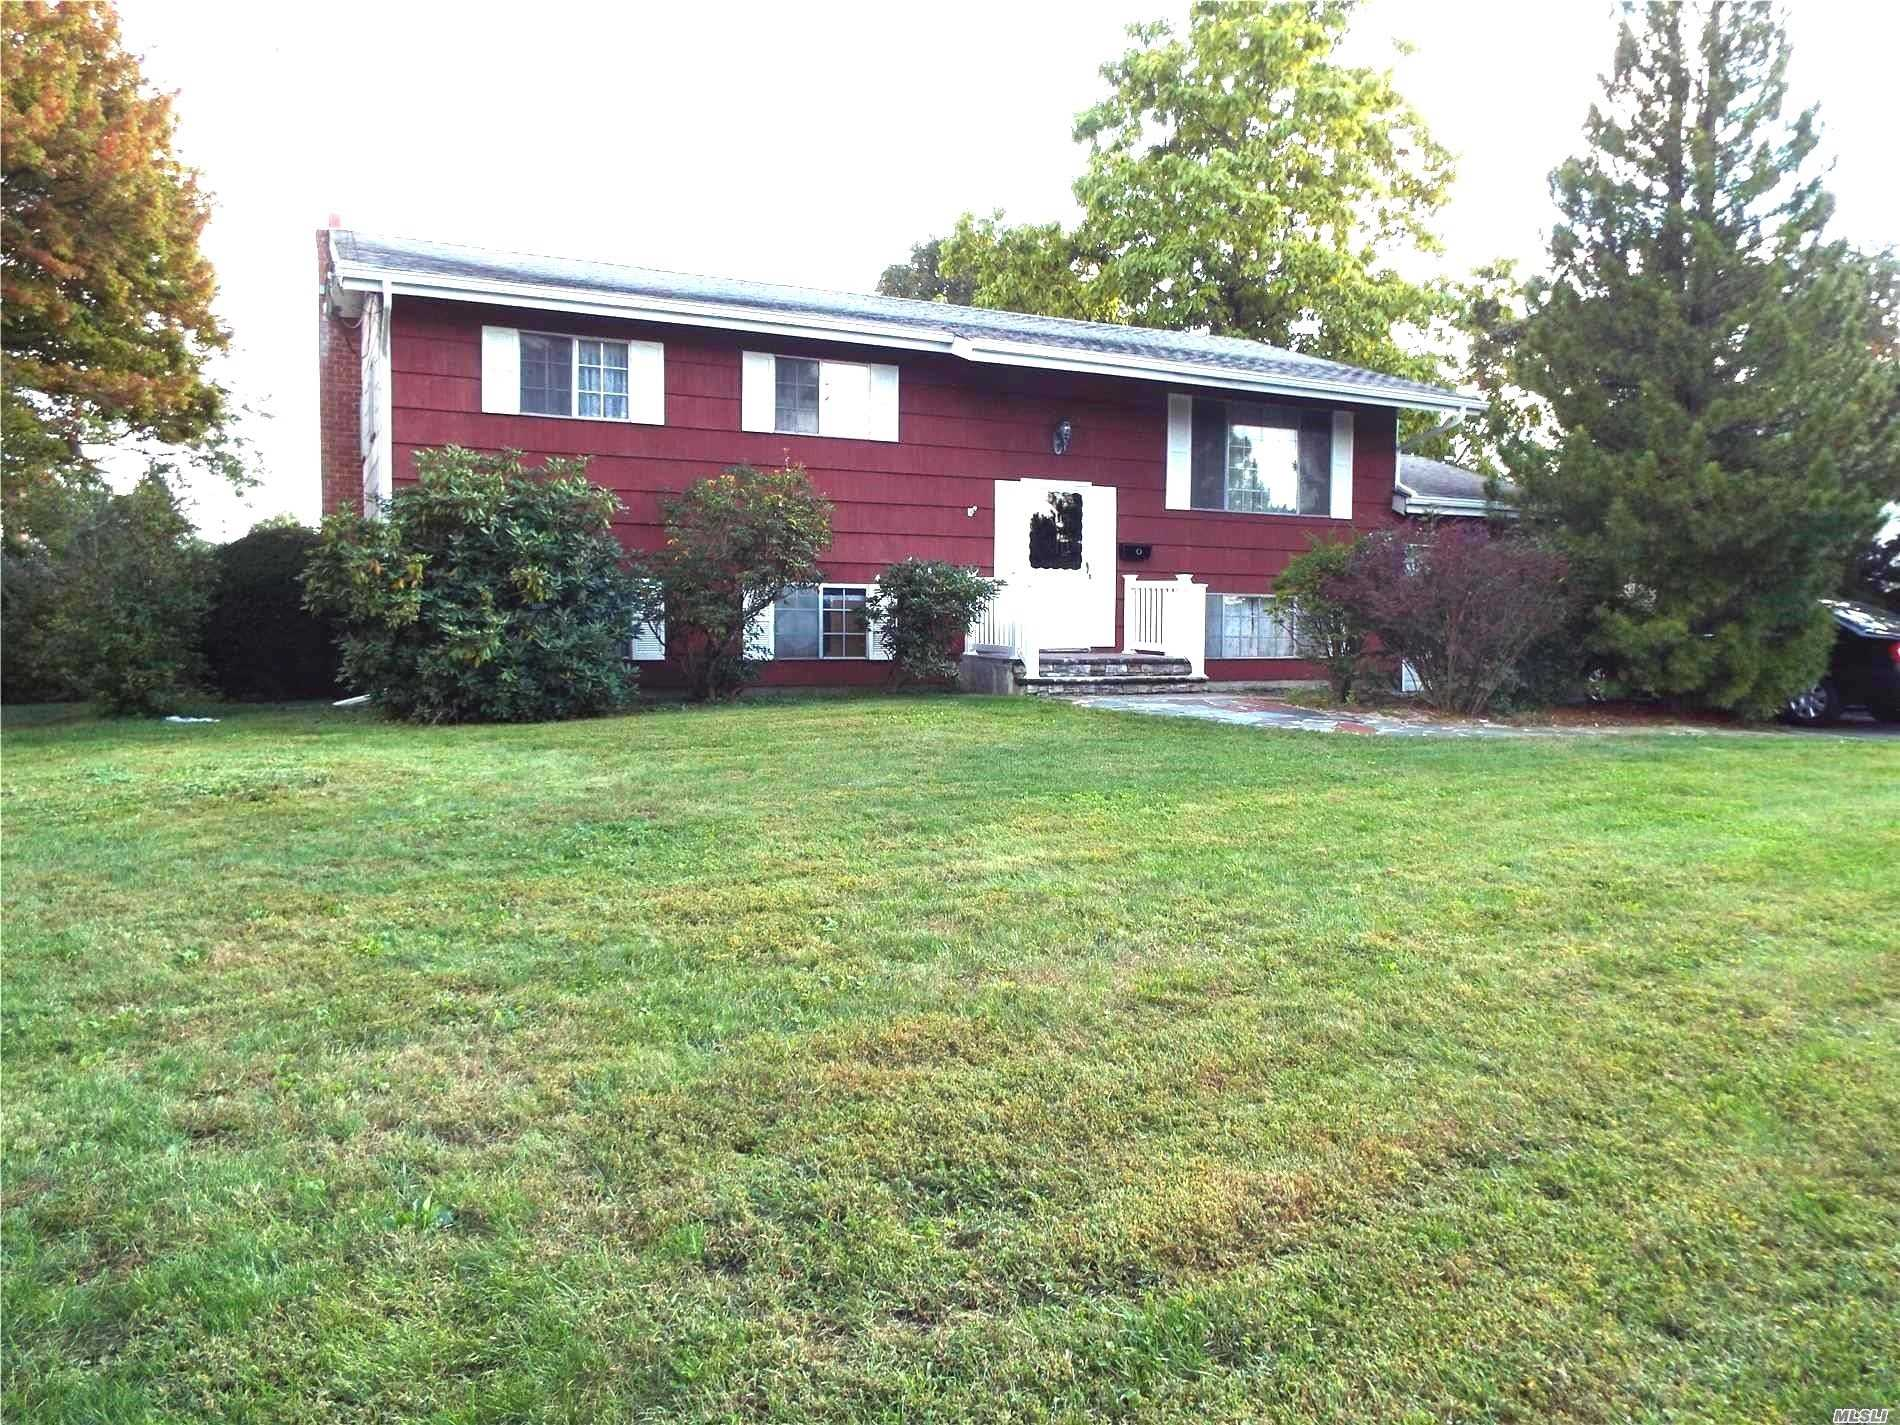 Half Hollow Hills Schools! Spacious Home Well Maintained With 4 Bedrooms, 2 Full Baths And Lots Of Recreation Room. Needs Updating But Furnace Was Recently Replaced And All Major Systems Are Working Well. Call Today To Arrange A Showing!